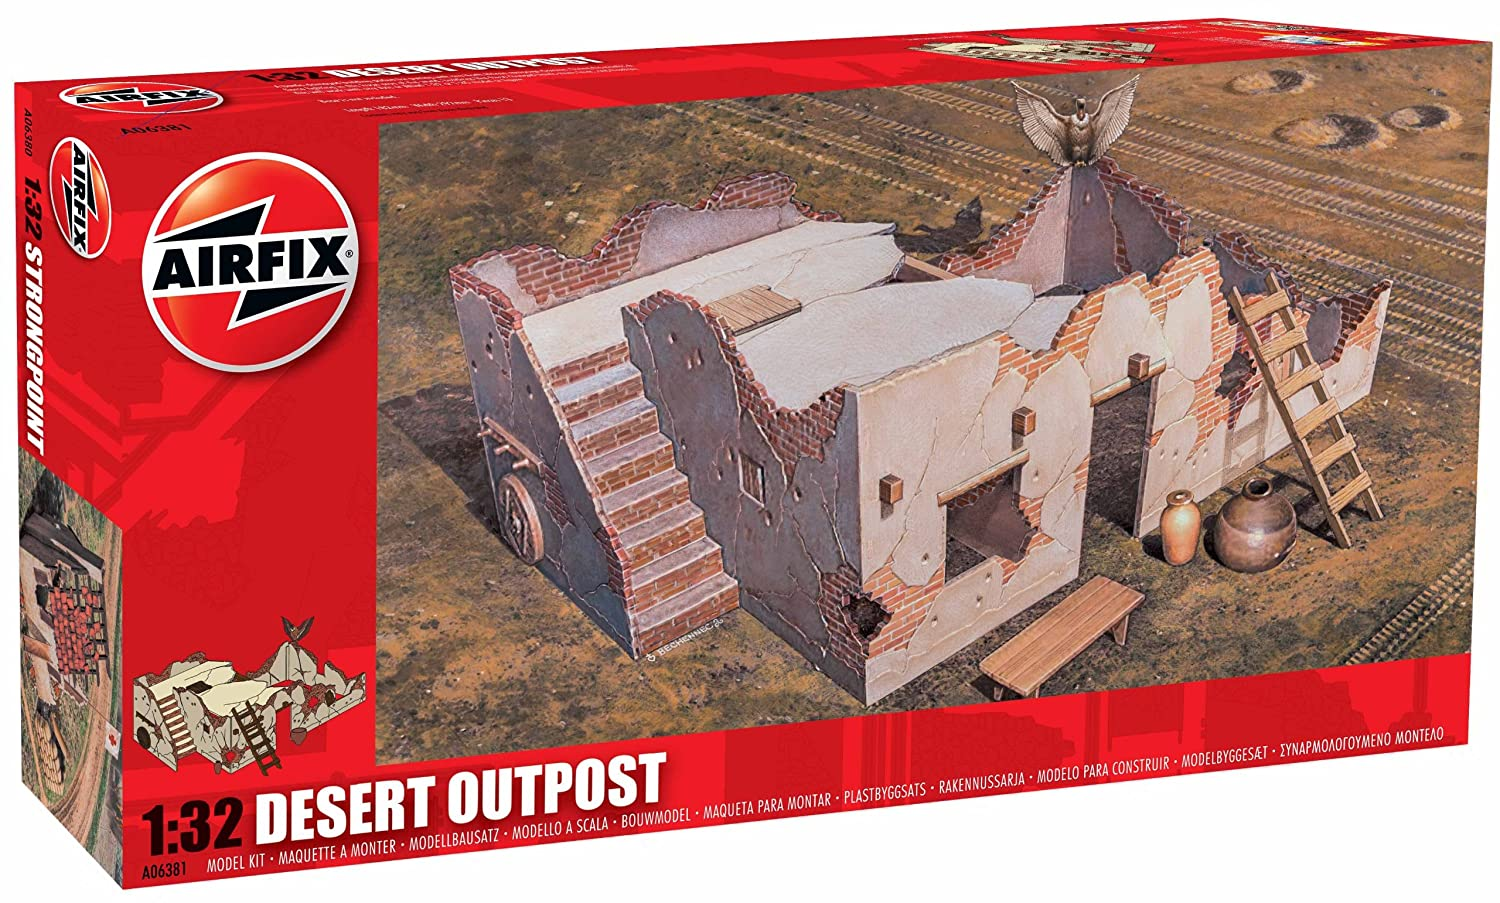 Airfix A06380 Strongpoint in 1:32